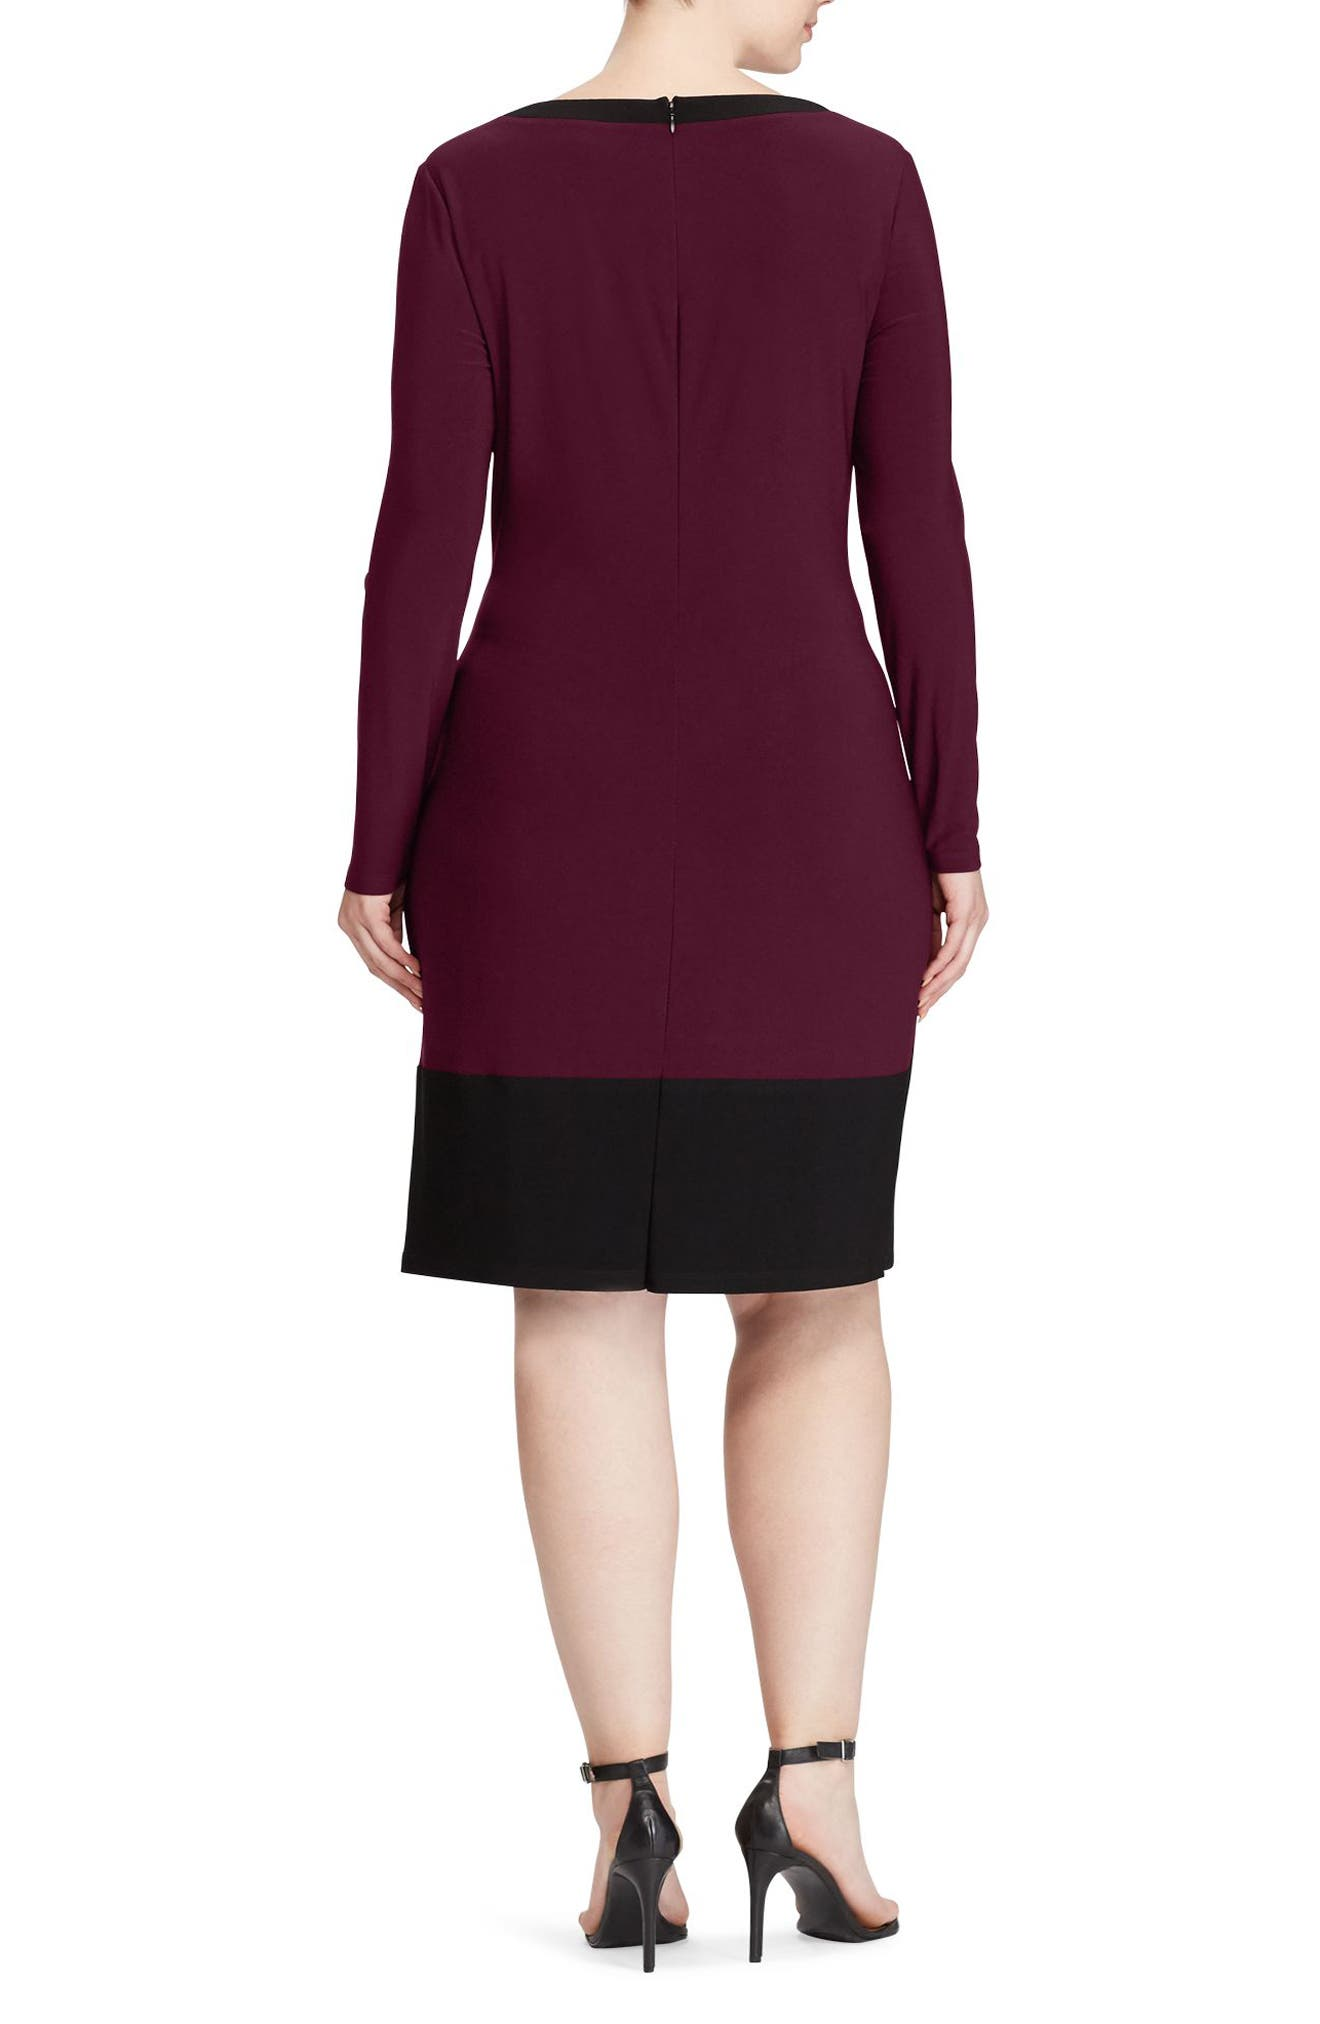 Colorblock Sheath Dress,                             Alternate thumbnail 2, color,                             600